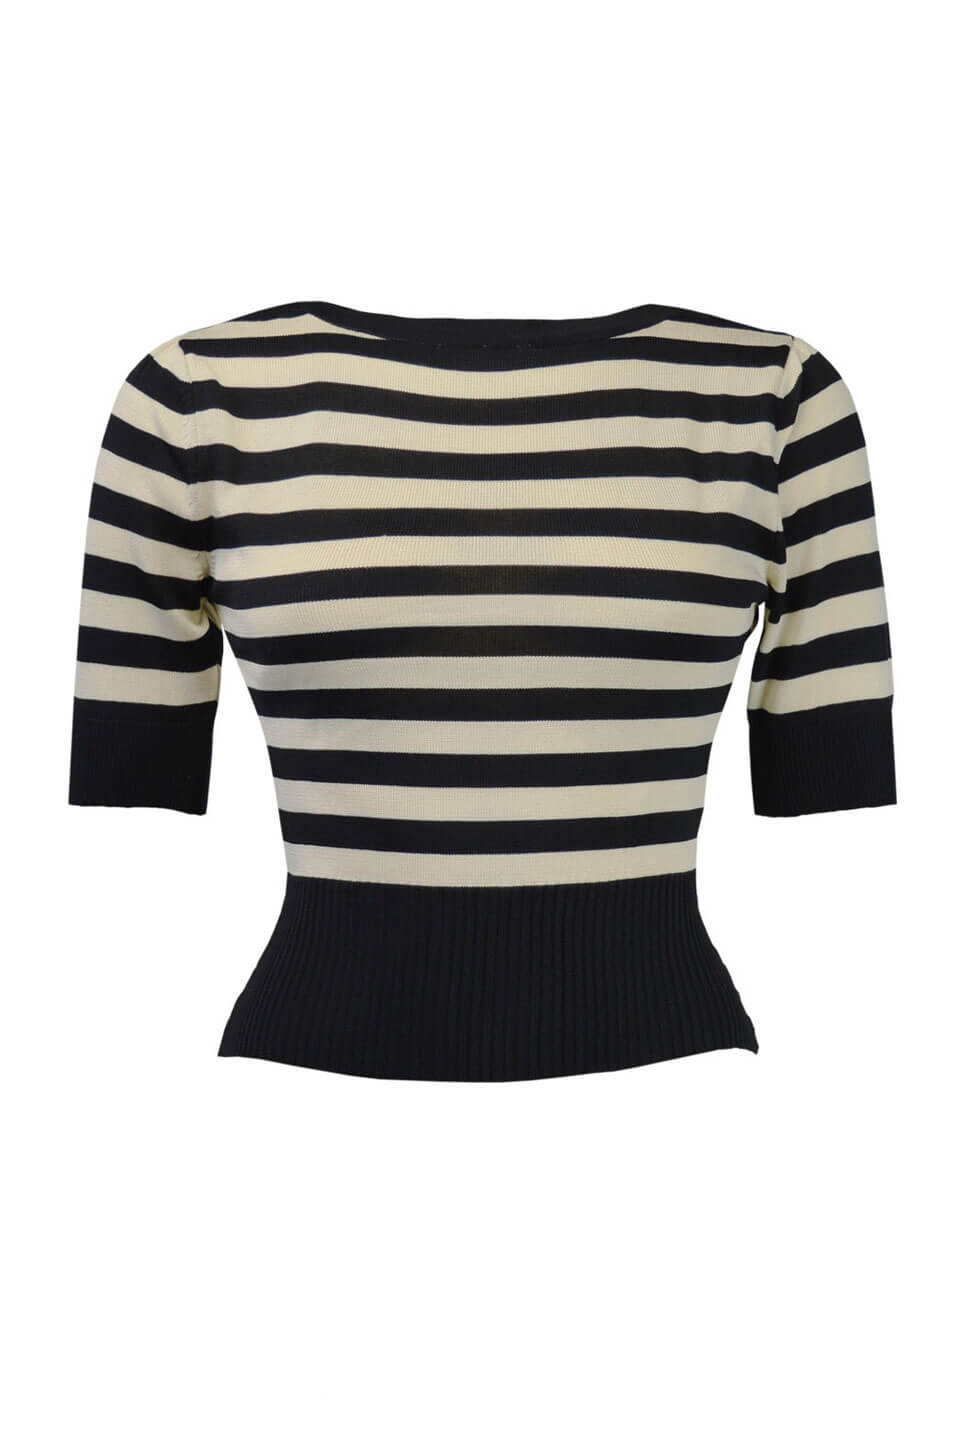 Black and Ivory Striped Boat Neck Jumper | 1930s & 40s Style | Weekend Doll